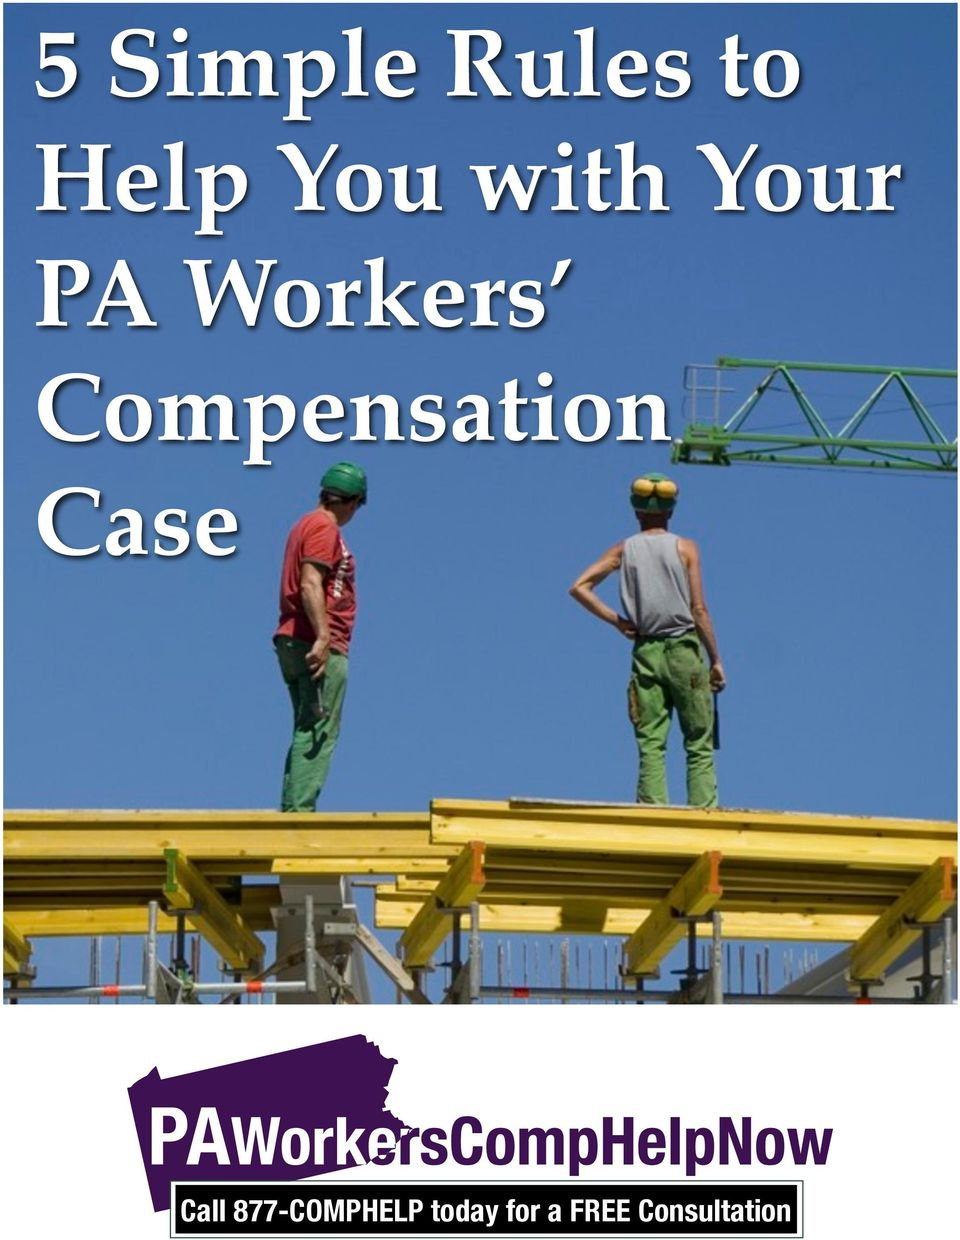 Your PA Workers